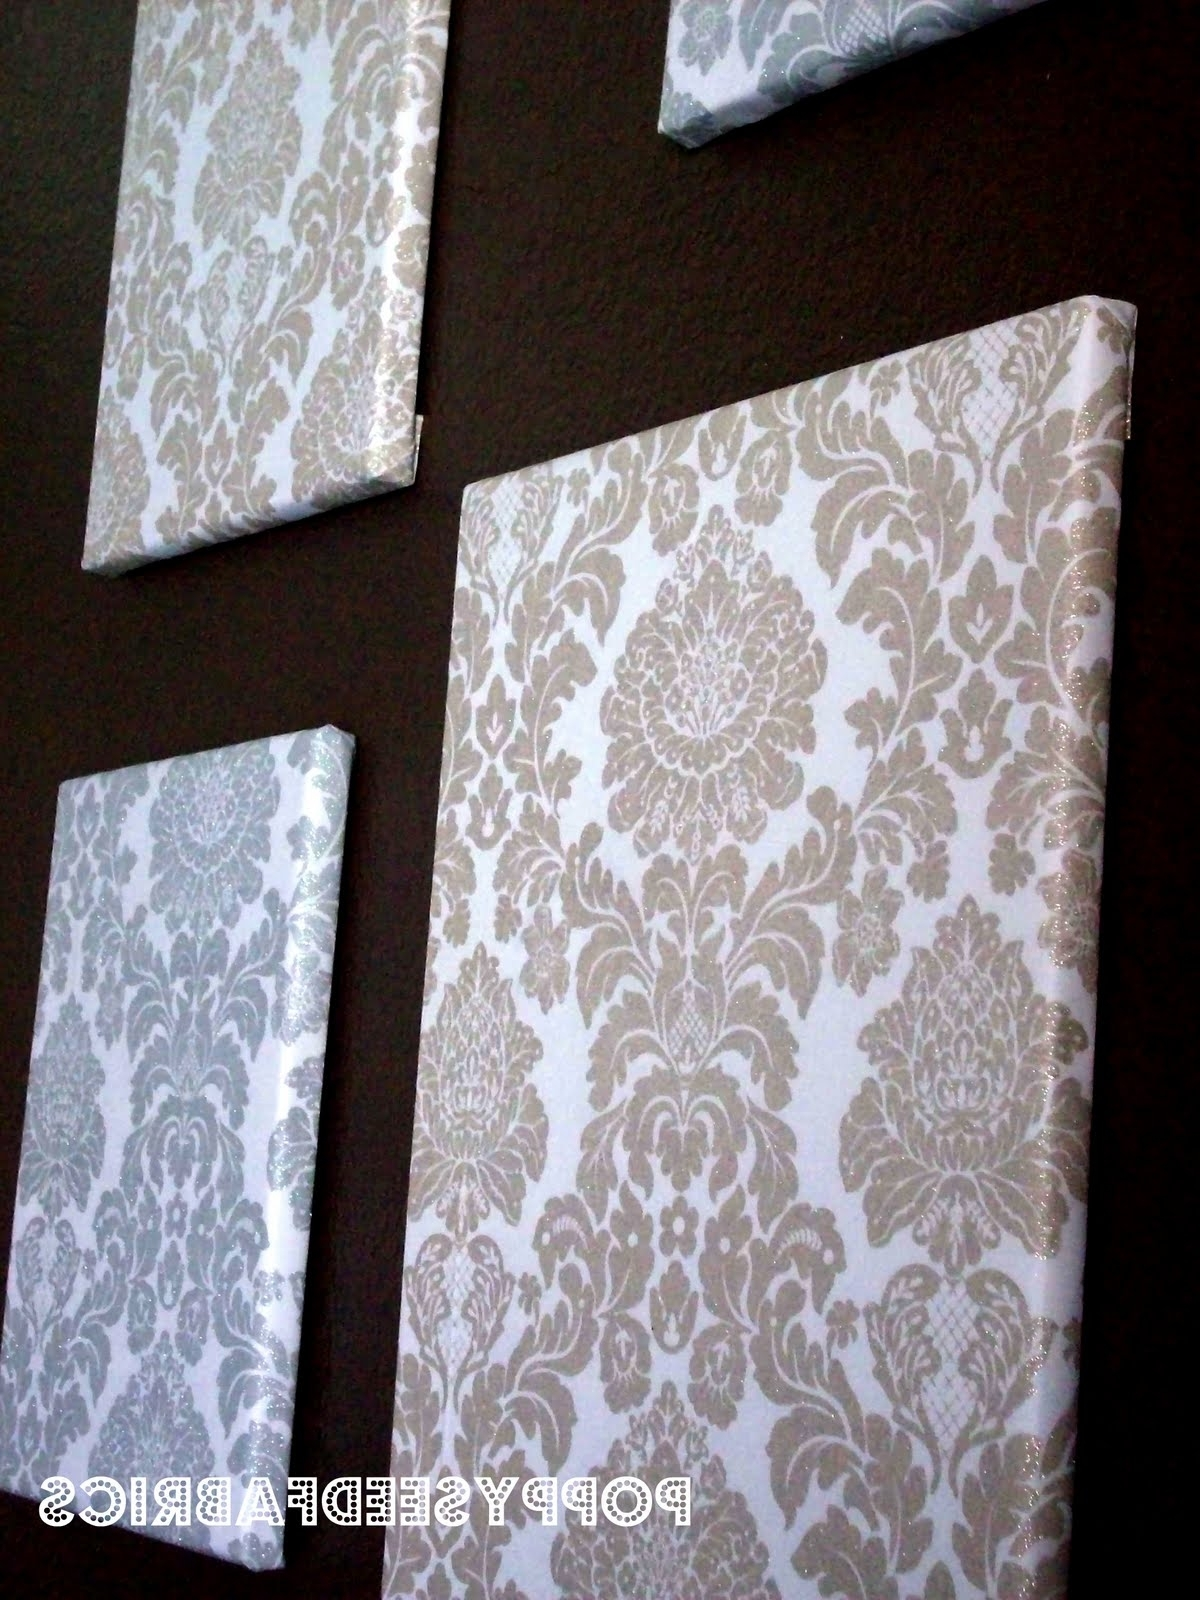 Canvas Wall Art With Fabric Intended For Well Known Poppyseed Fabrics: Fabric Wall Art Tutorial (Gallery 15 of 15)